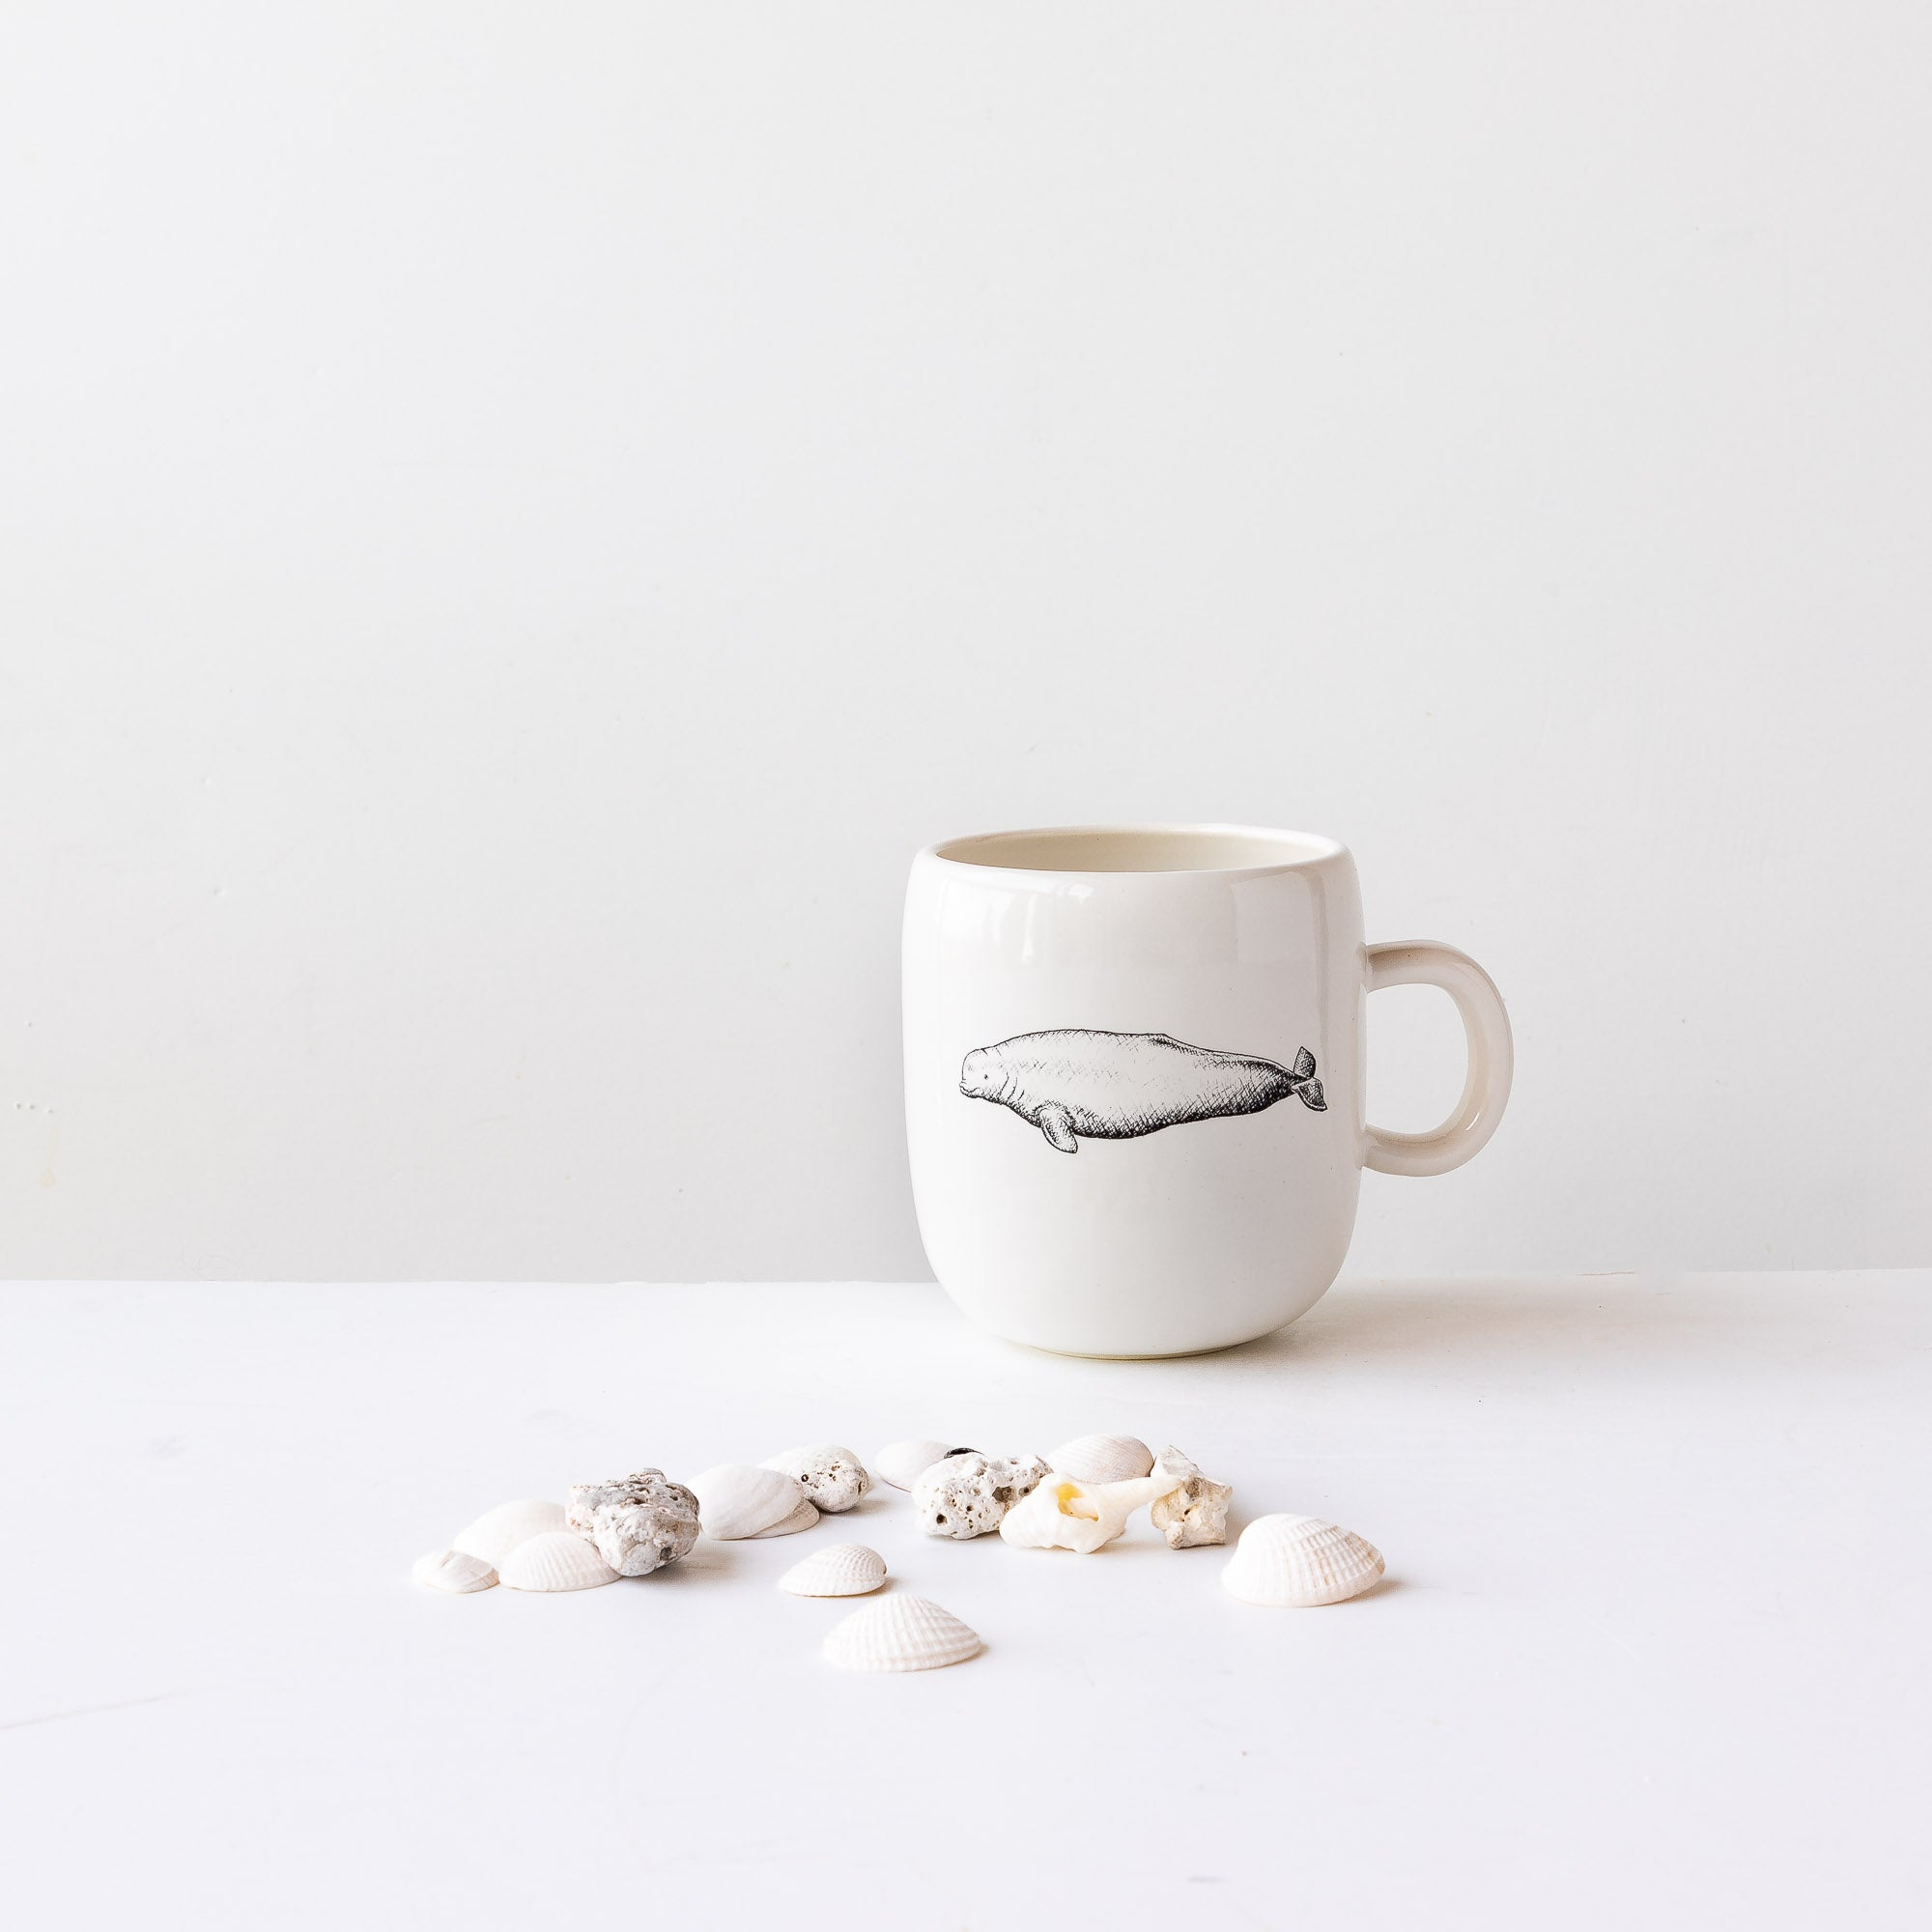 Beluga Whale - Handmade Porcelain Coffee Mug / Cup - Sold by Chic & Basta